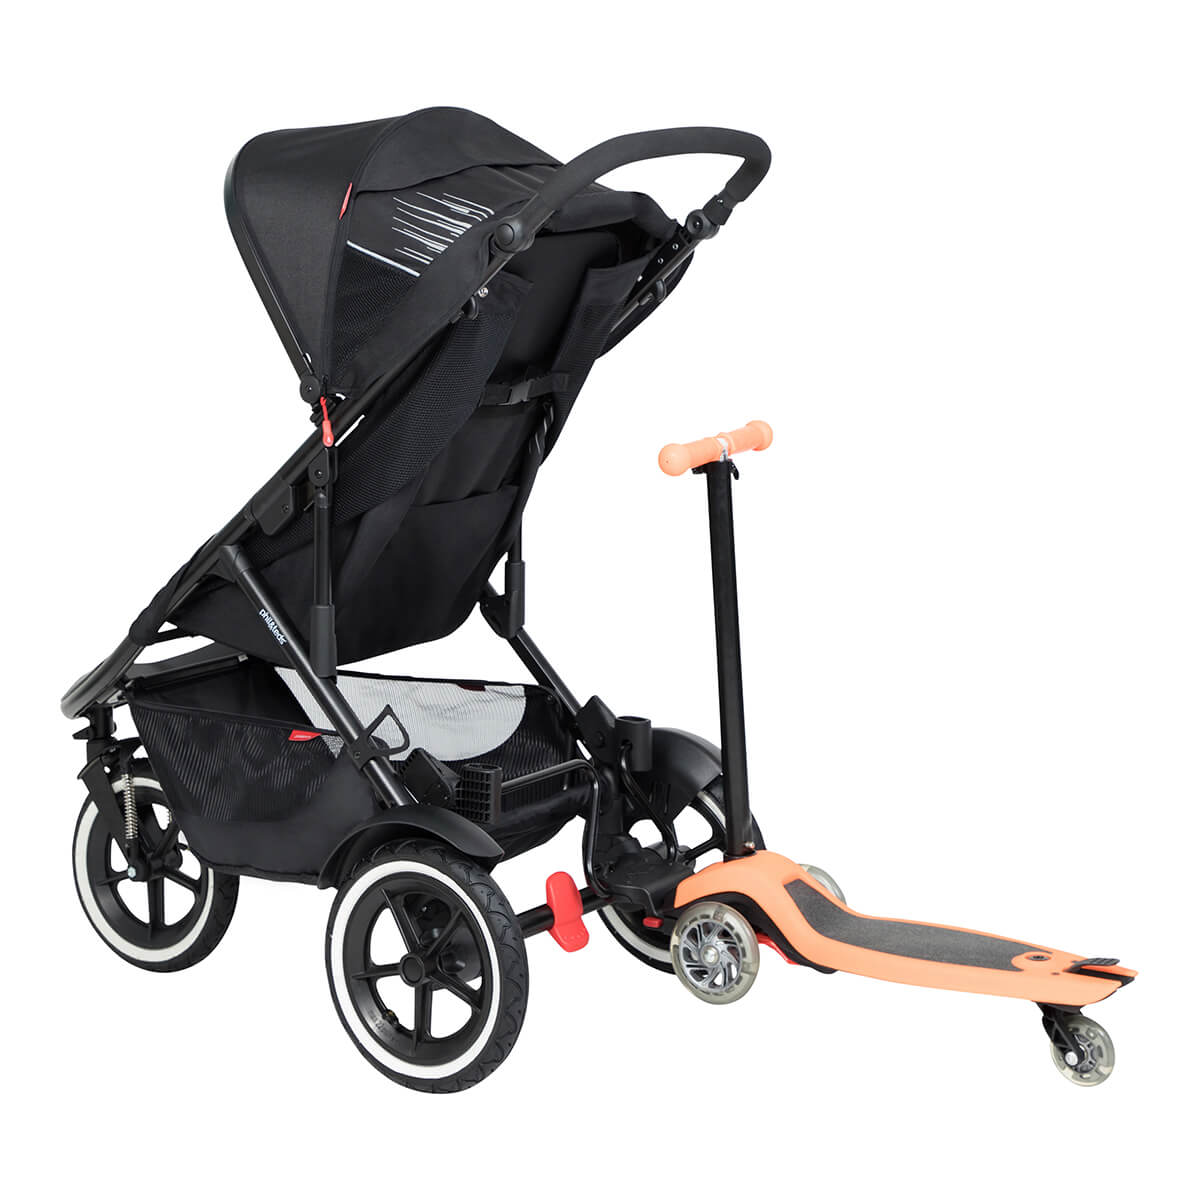 https://cdn.accentuate.io/4509901848653/19466204315842/philteds-sport-buggy-with-freerider-stroller-board-in-rear-v1626485414609.jpg?1200x1200